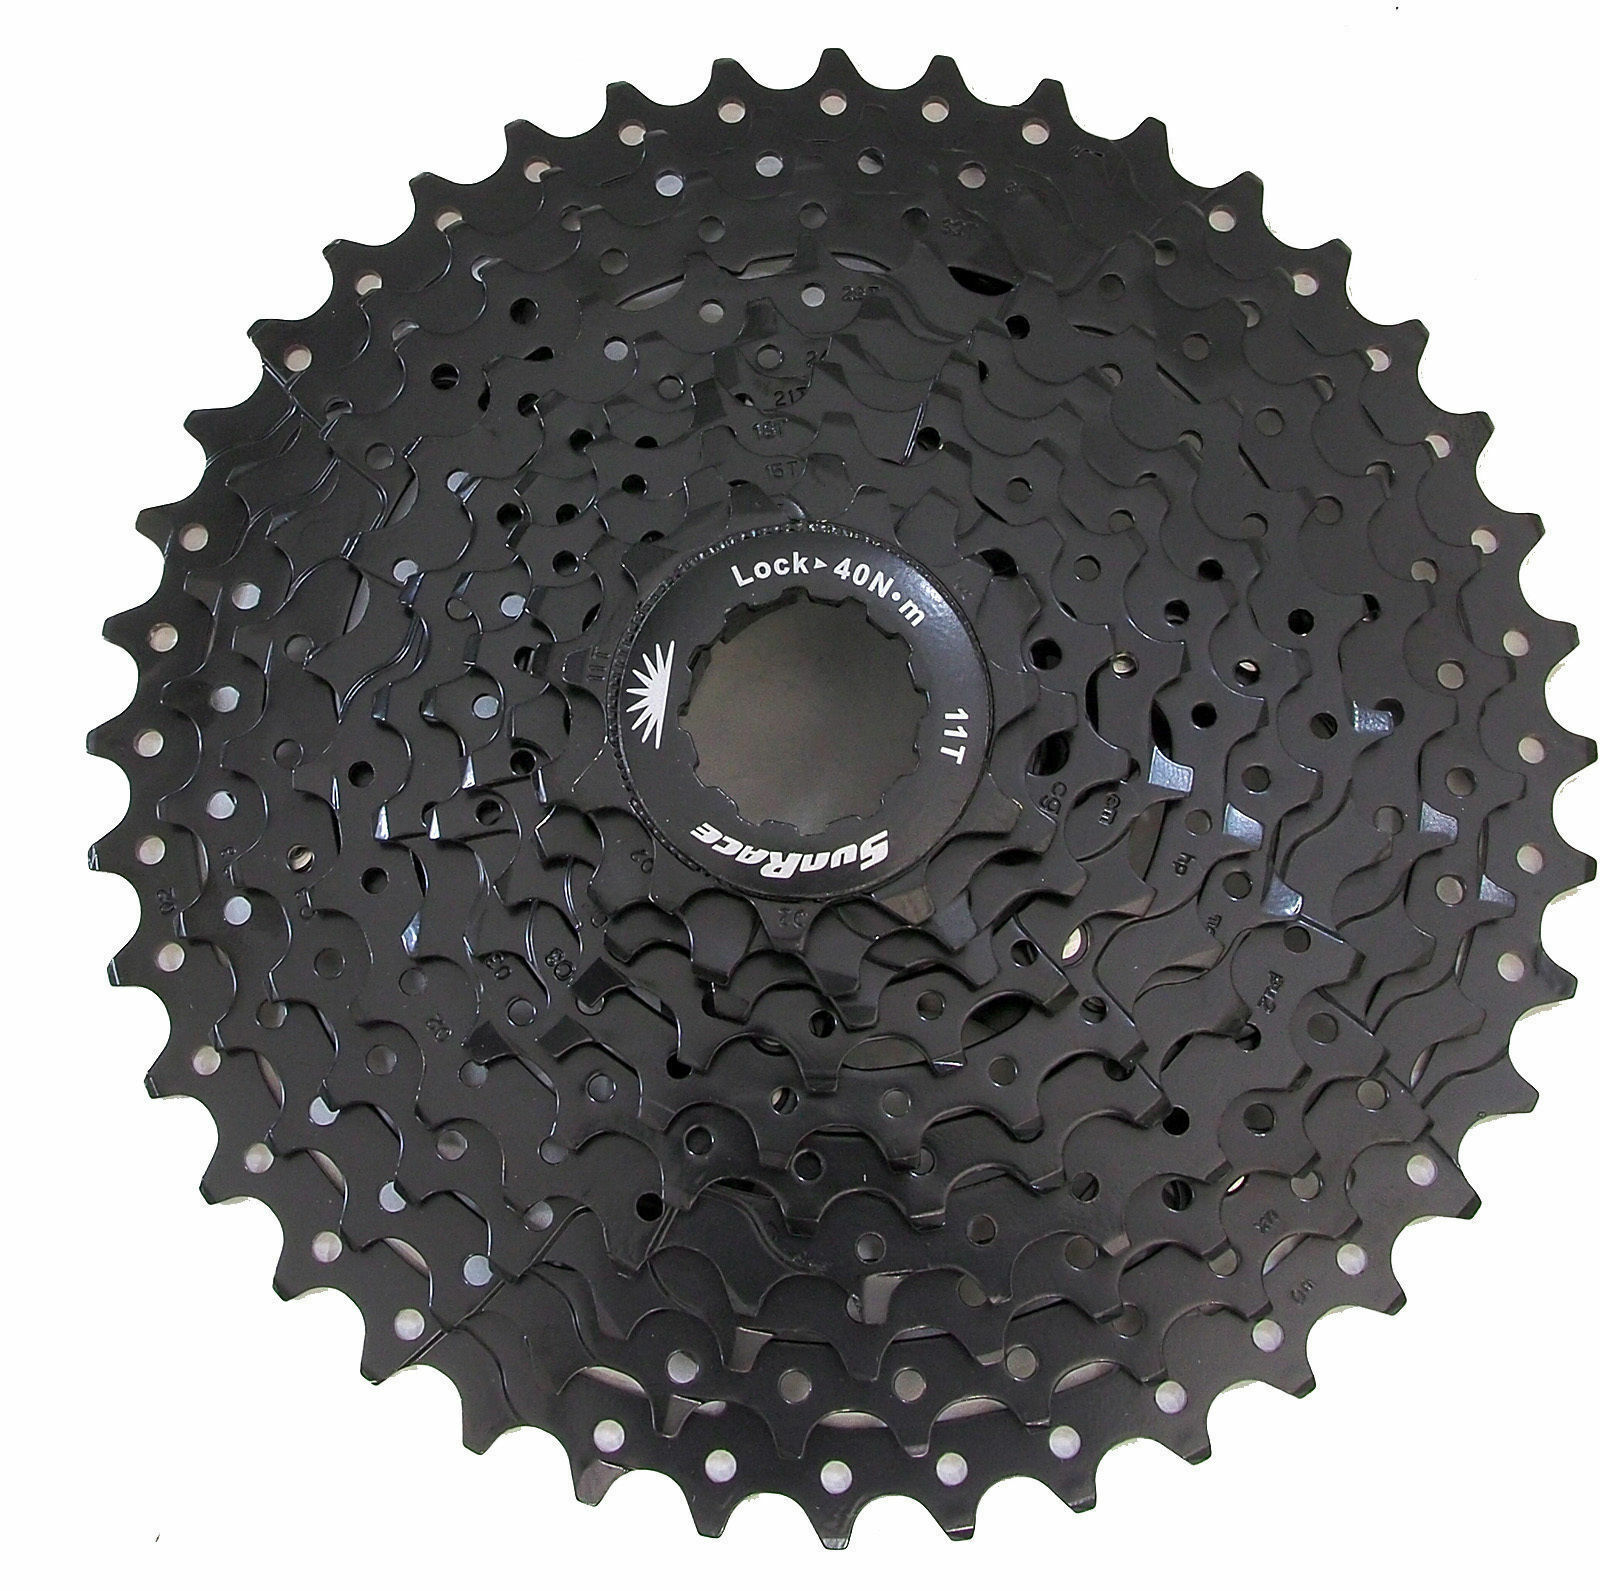 Bicycle Freewheel 10Speed 11-40T 11-42T Wide Ratio Cassette SunRace CSMS3 GU